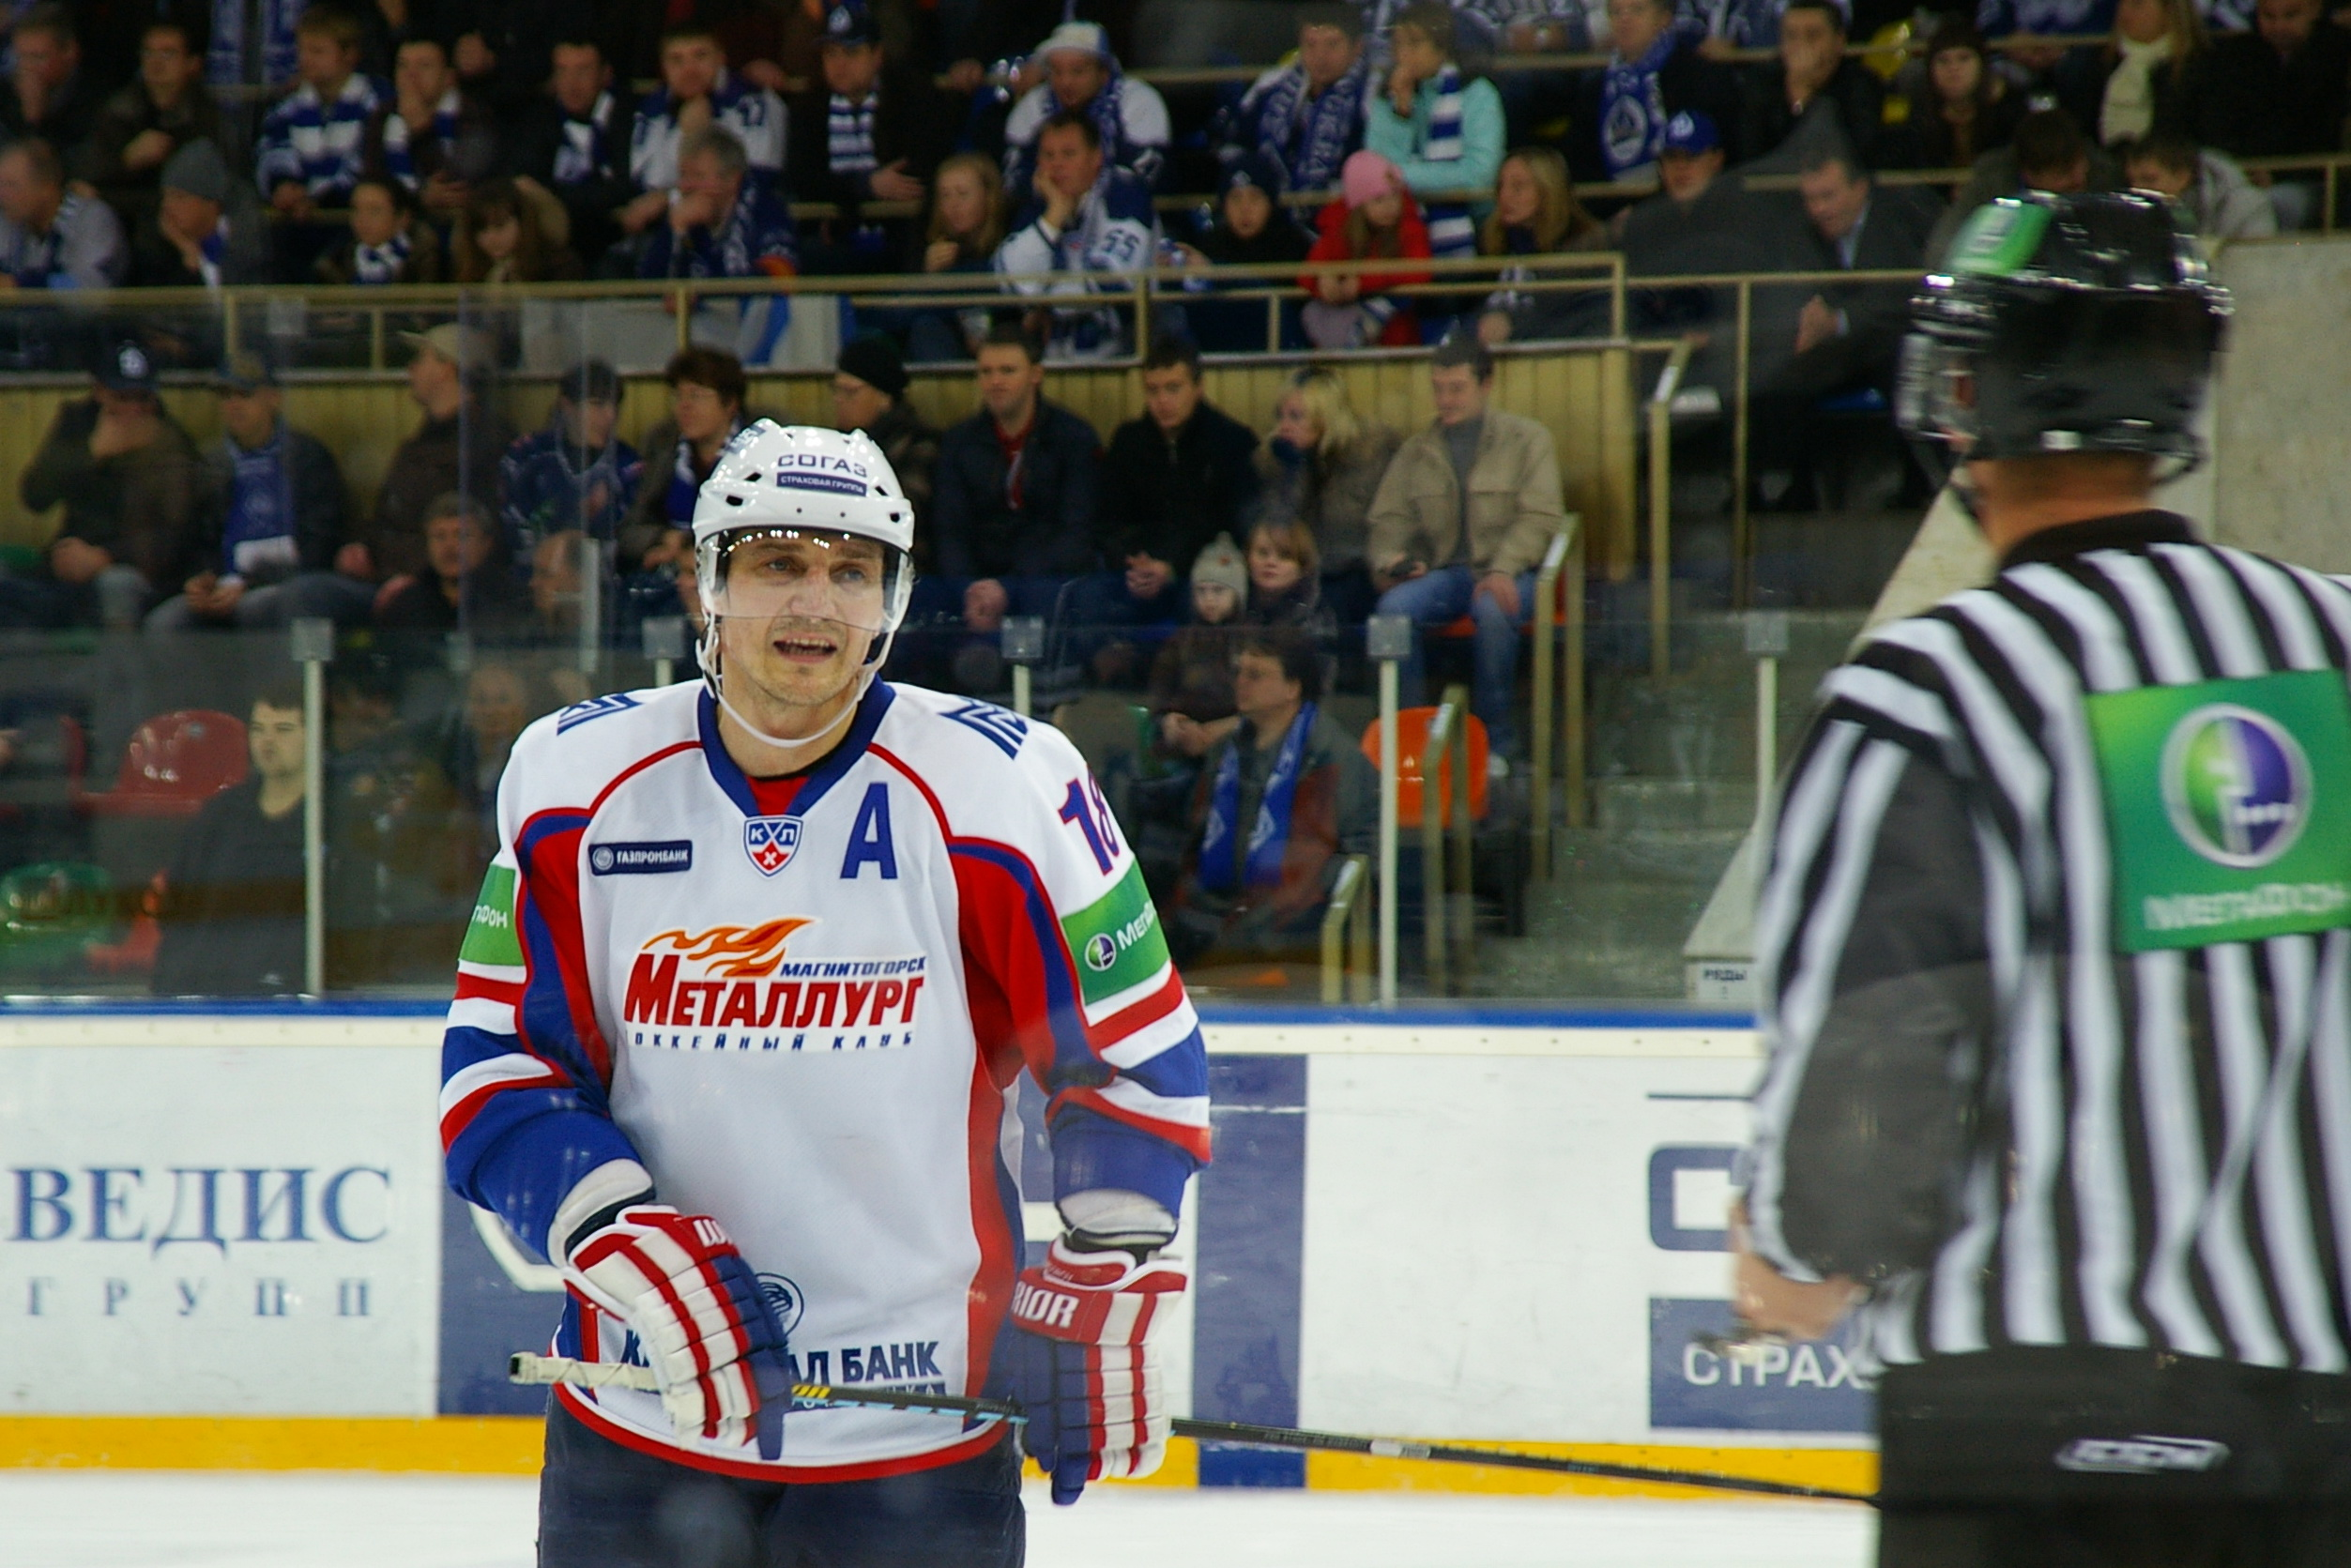 Sergei Fedorov in Metallurg Magnitogorsk uniform